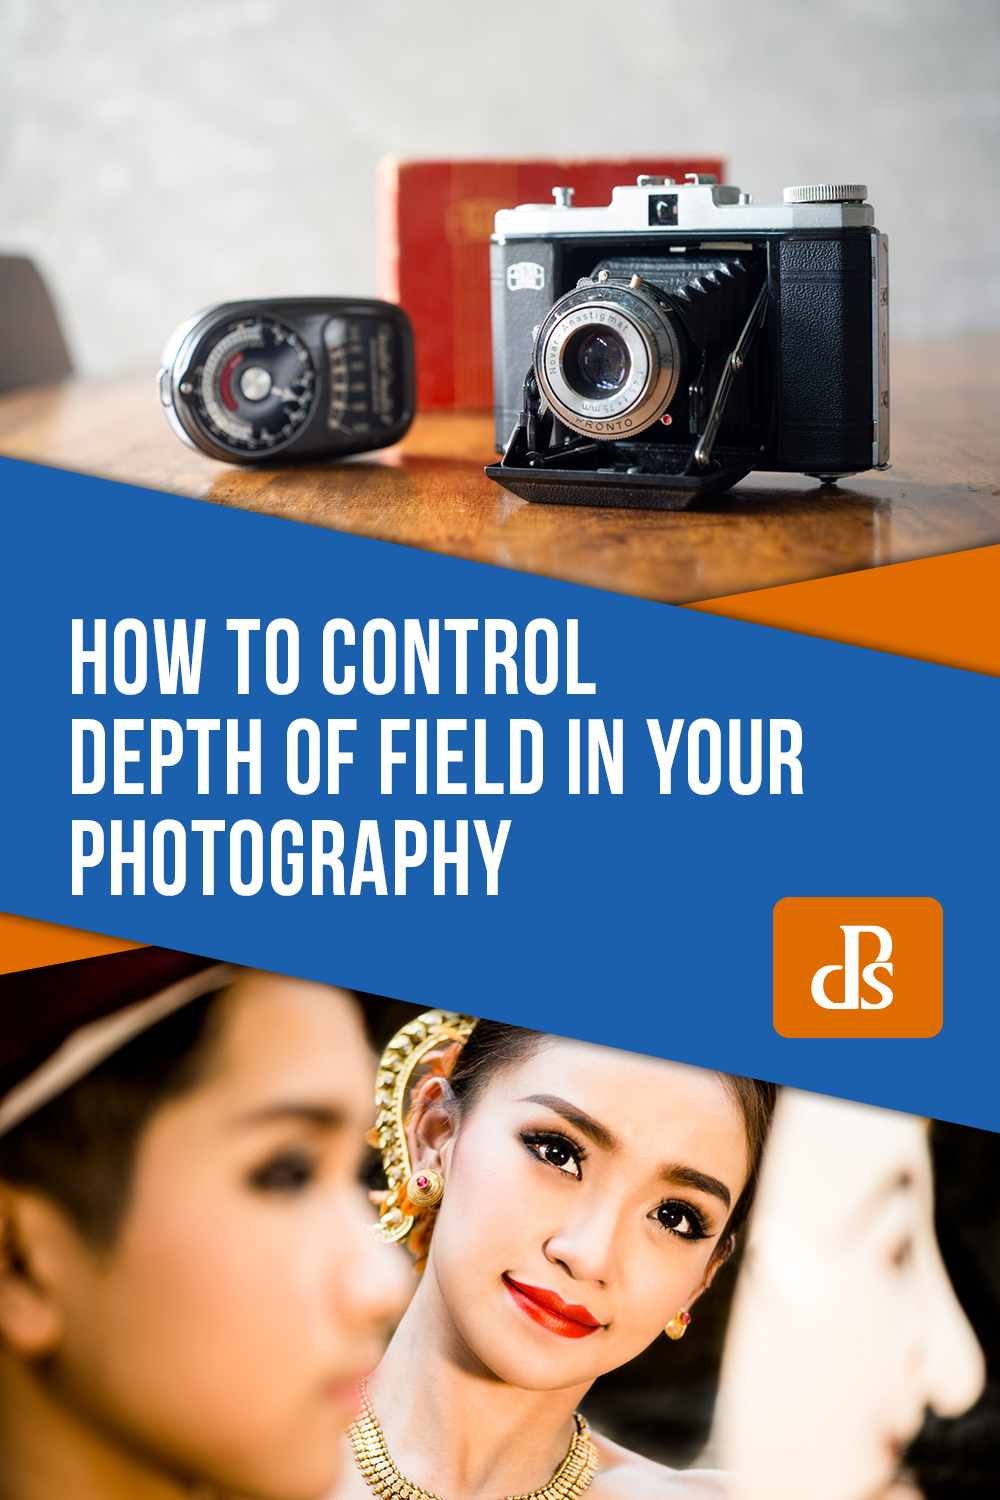 control depth of field in photography